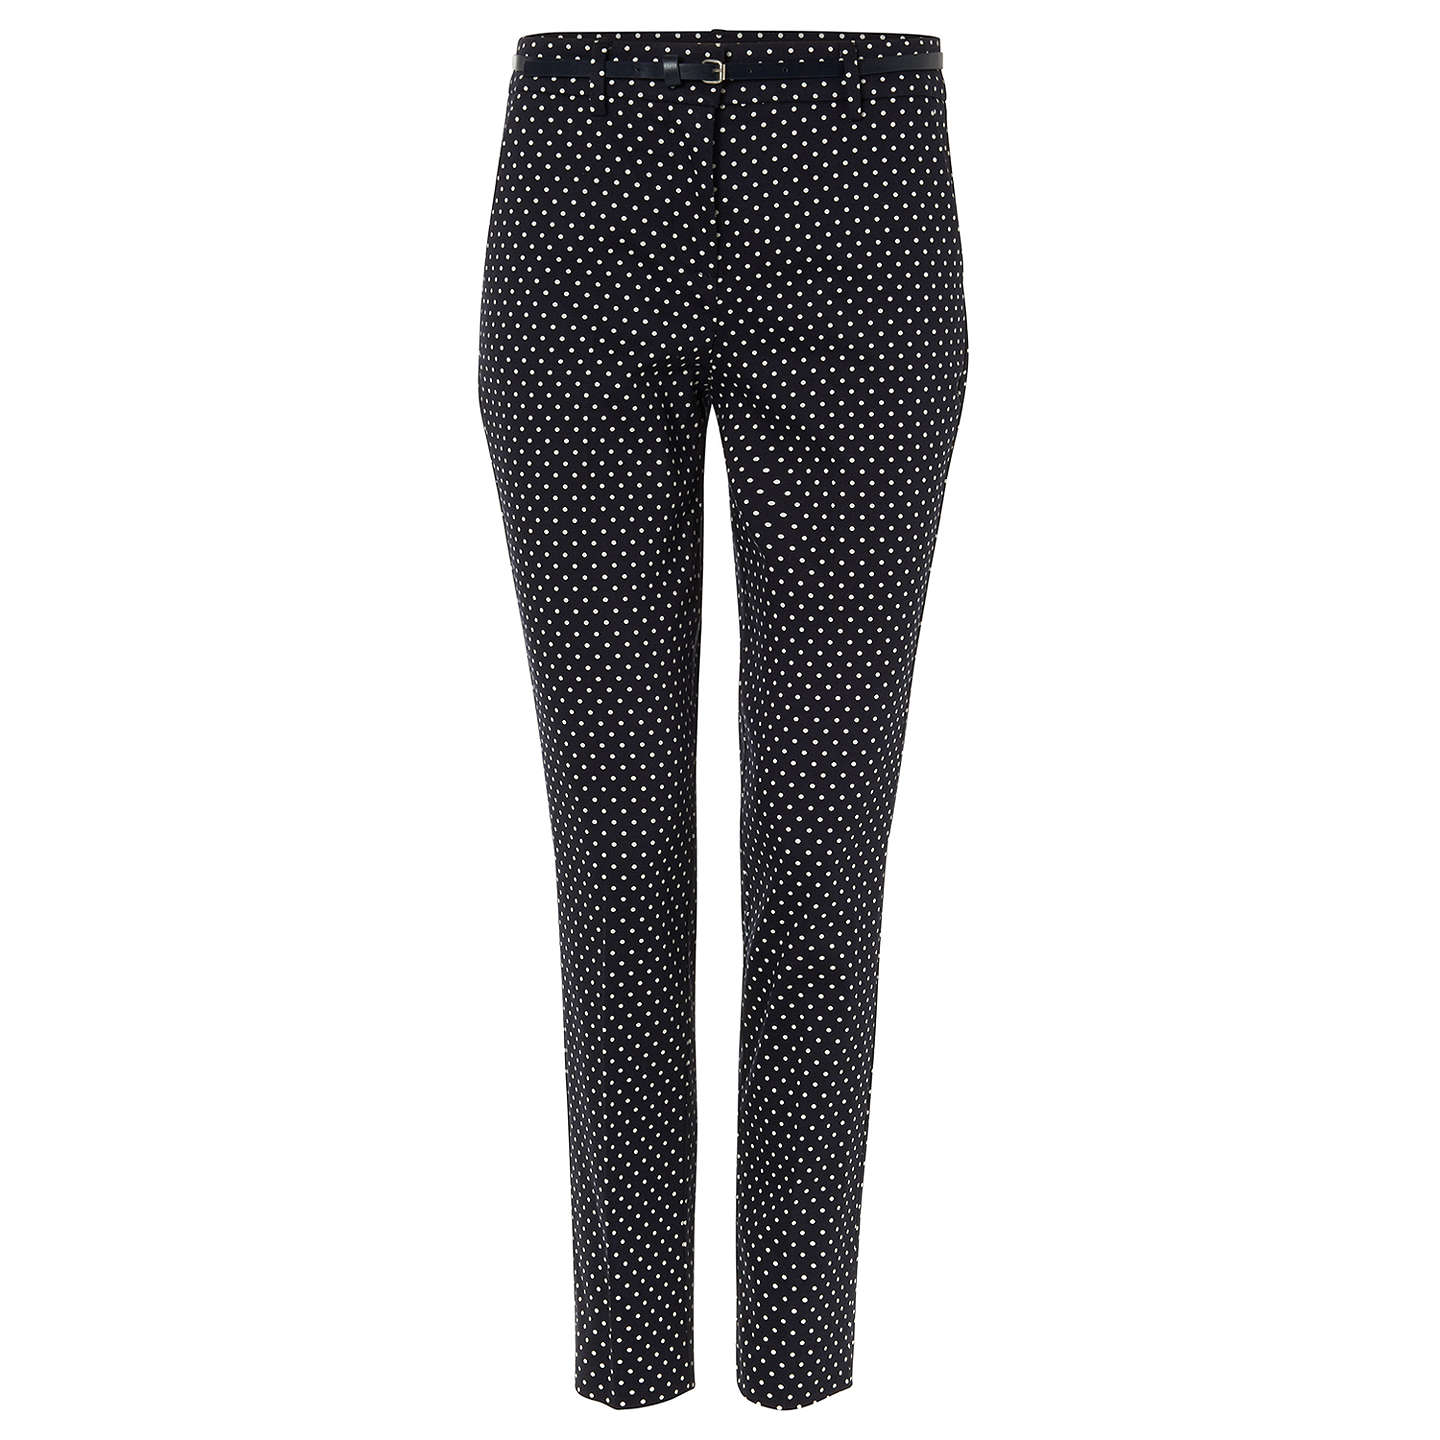 BuyPhase Eight Libby Spot Print Trousers, Navy/Ivory, 10 Online at johnlewis.com